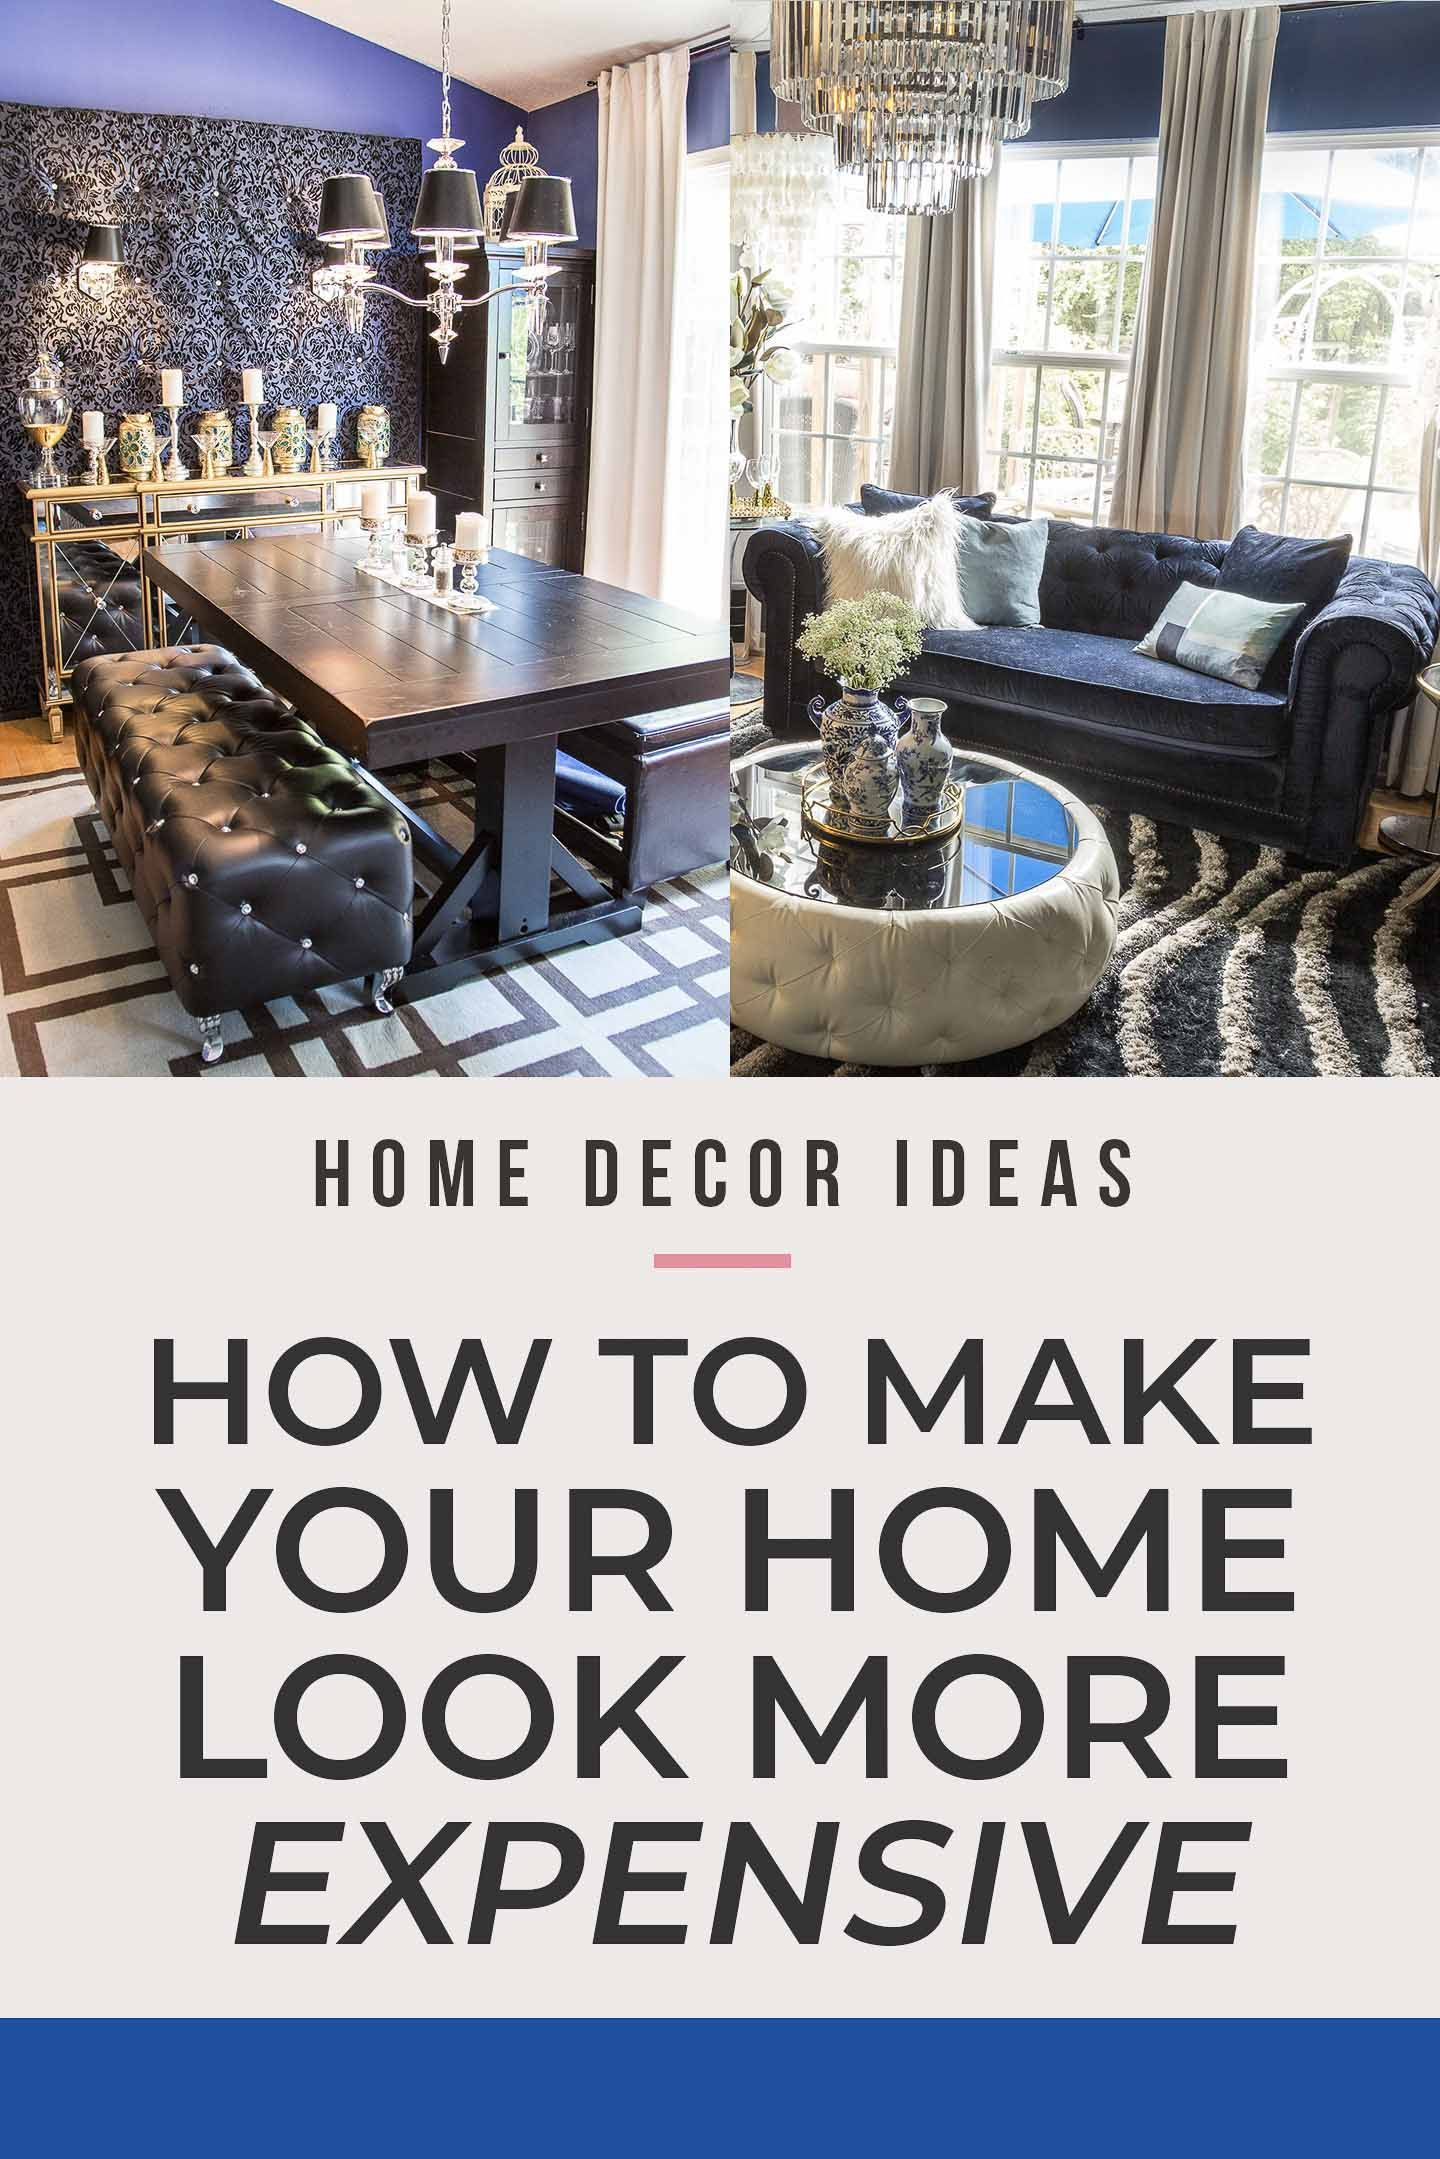 Cheap Household Decor Help Decorating My House On A Budget